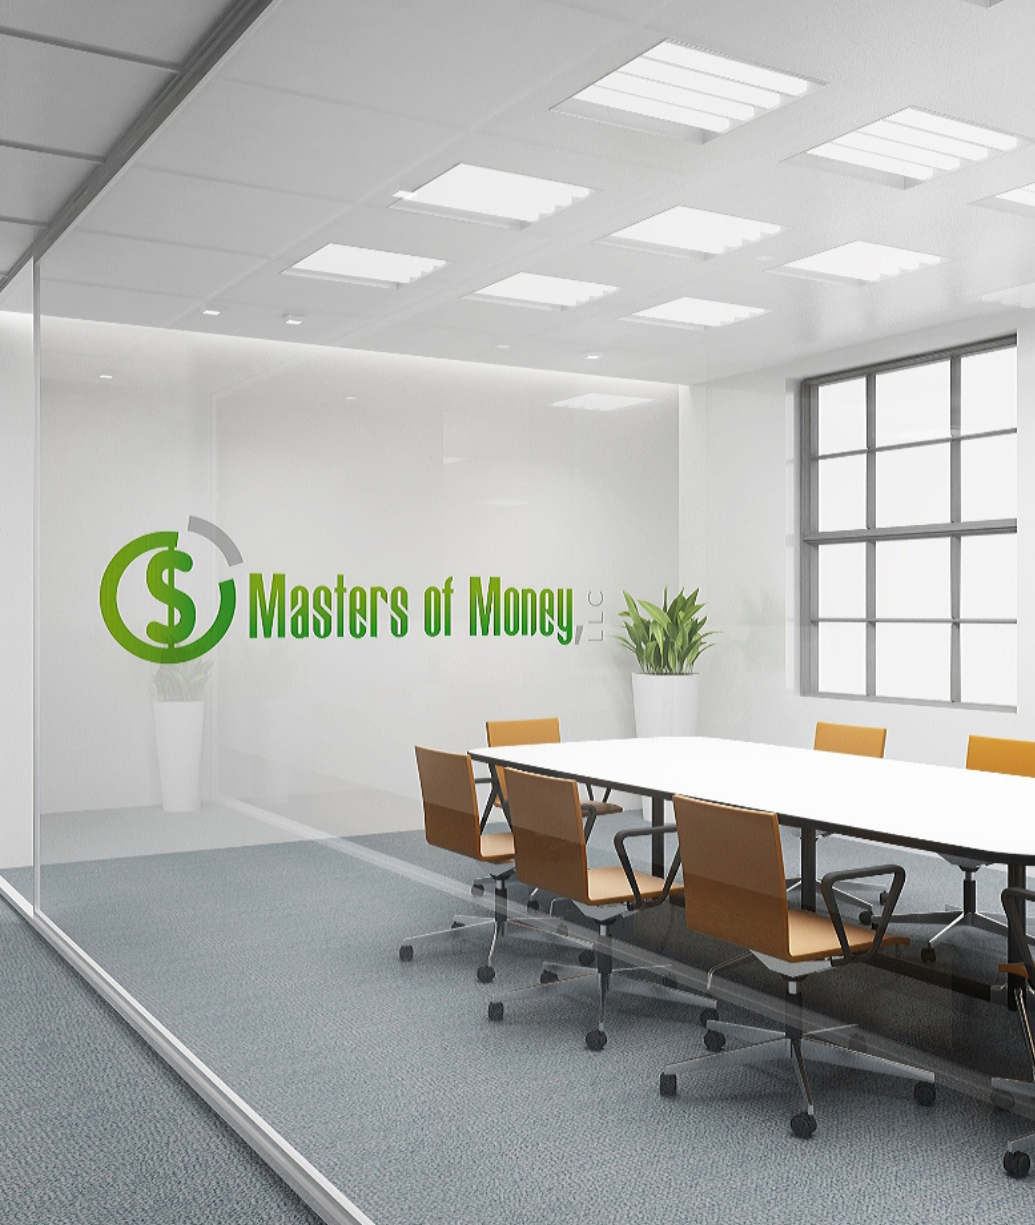 Masters of Money LLC Boardroom Picture